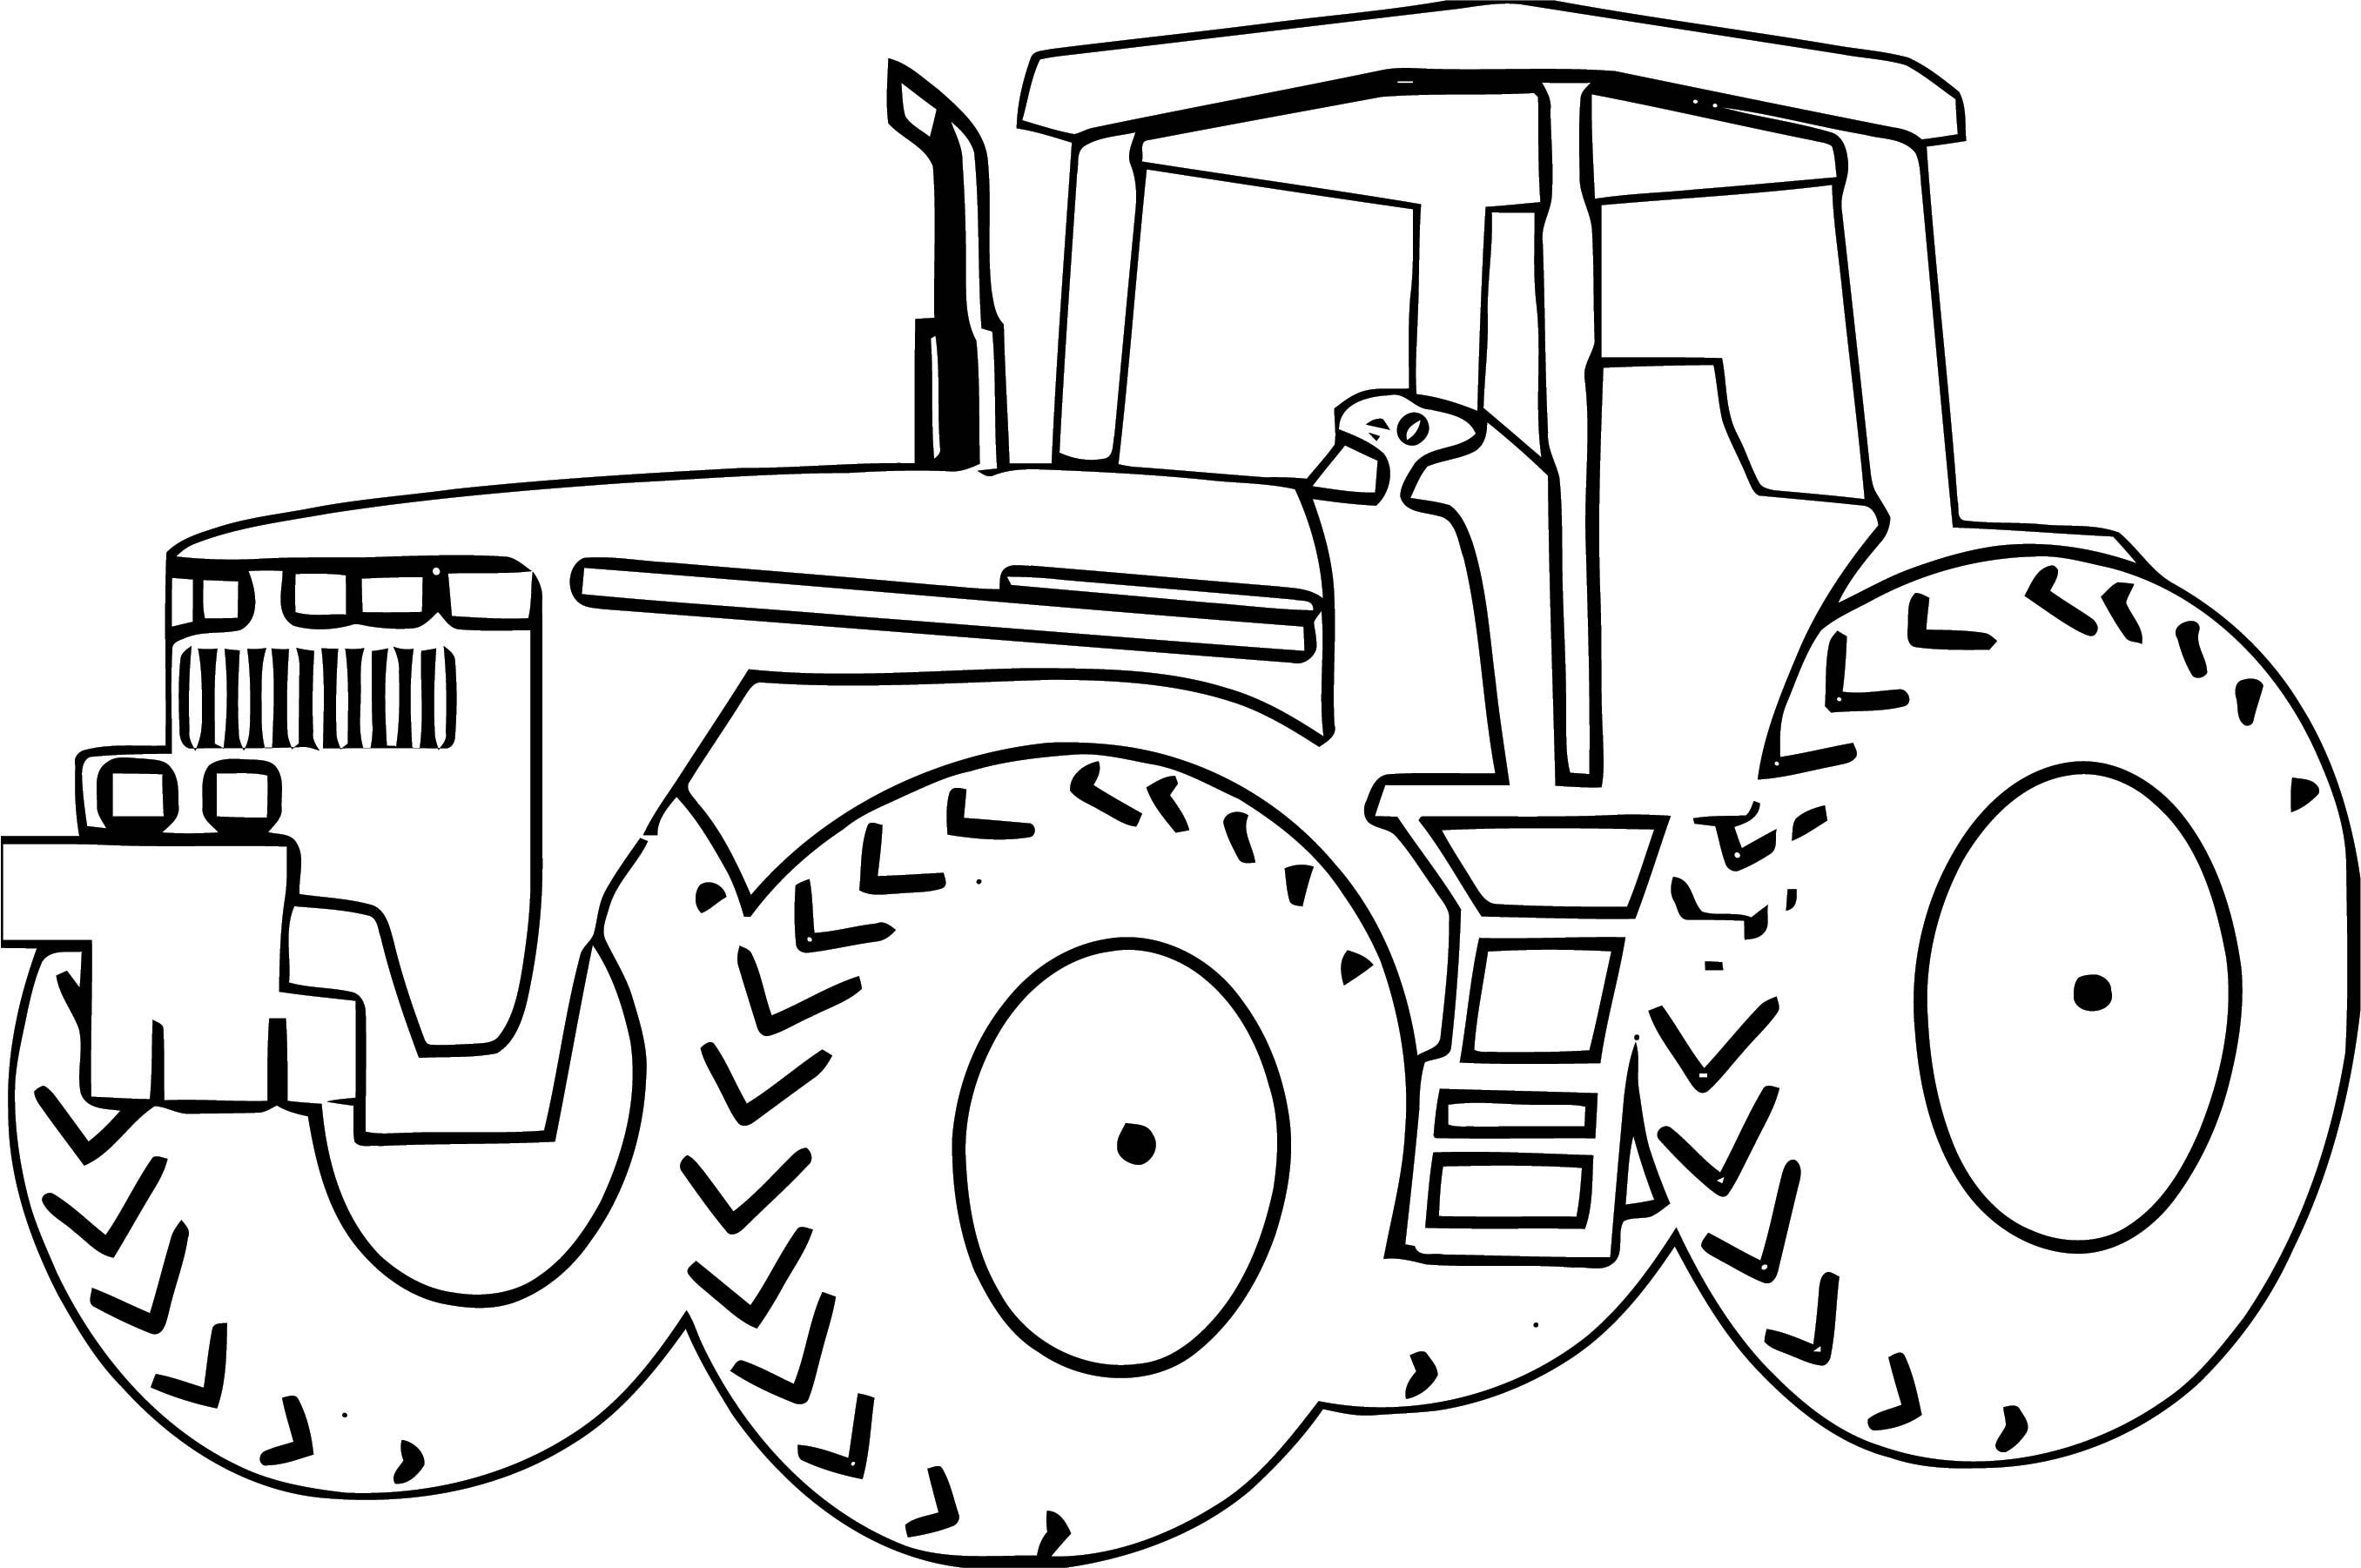 John Johnny Deere Tractor Coloring Page Wecoloringpage 57 Tractor Coloring Pages Coloring Pages Coloring Pages Dinosaur